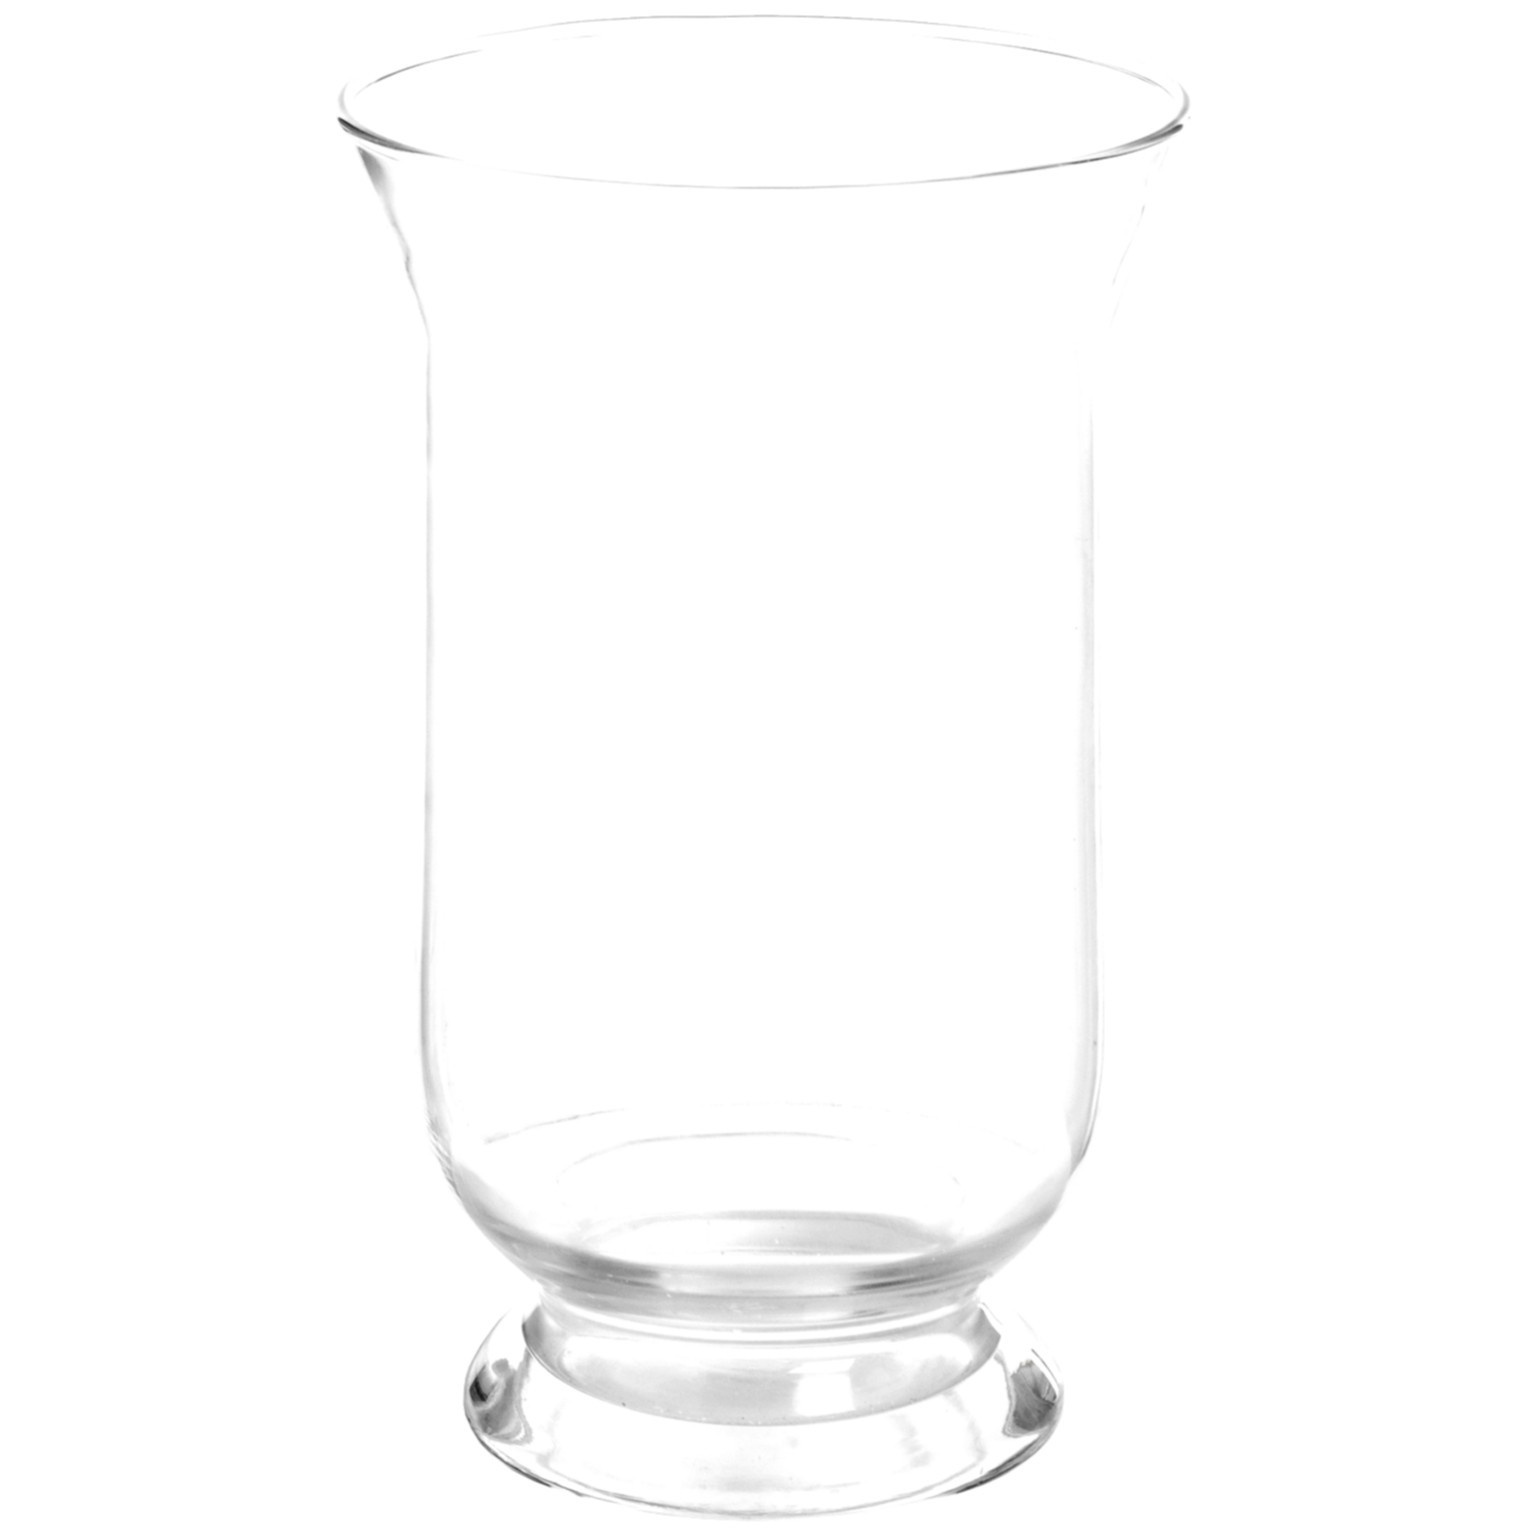 20 glass eiffel tower vases of why you should not go to glass vases wholesale glass vases with regard to large hurricane vases wholesale glass vases wholesale